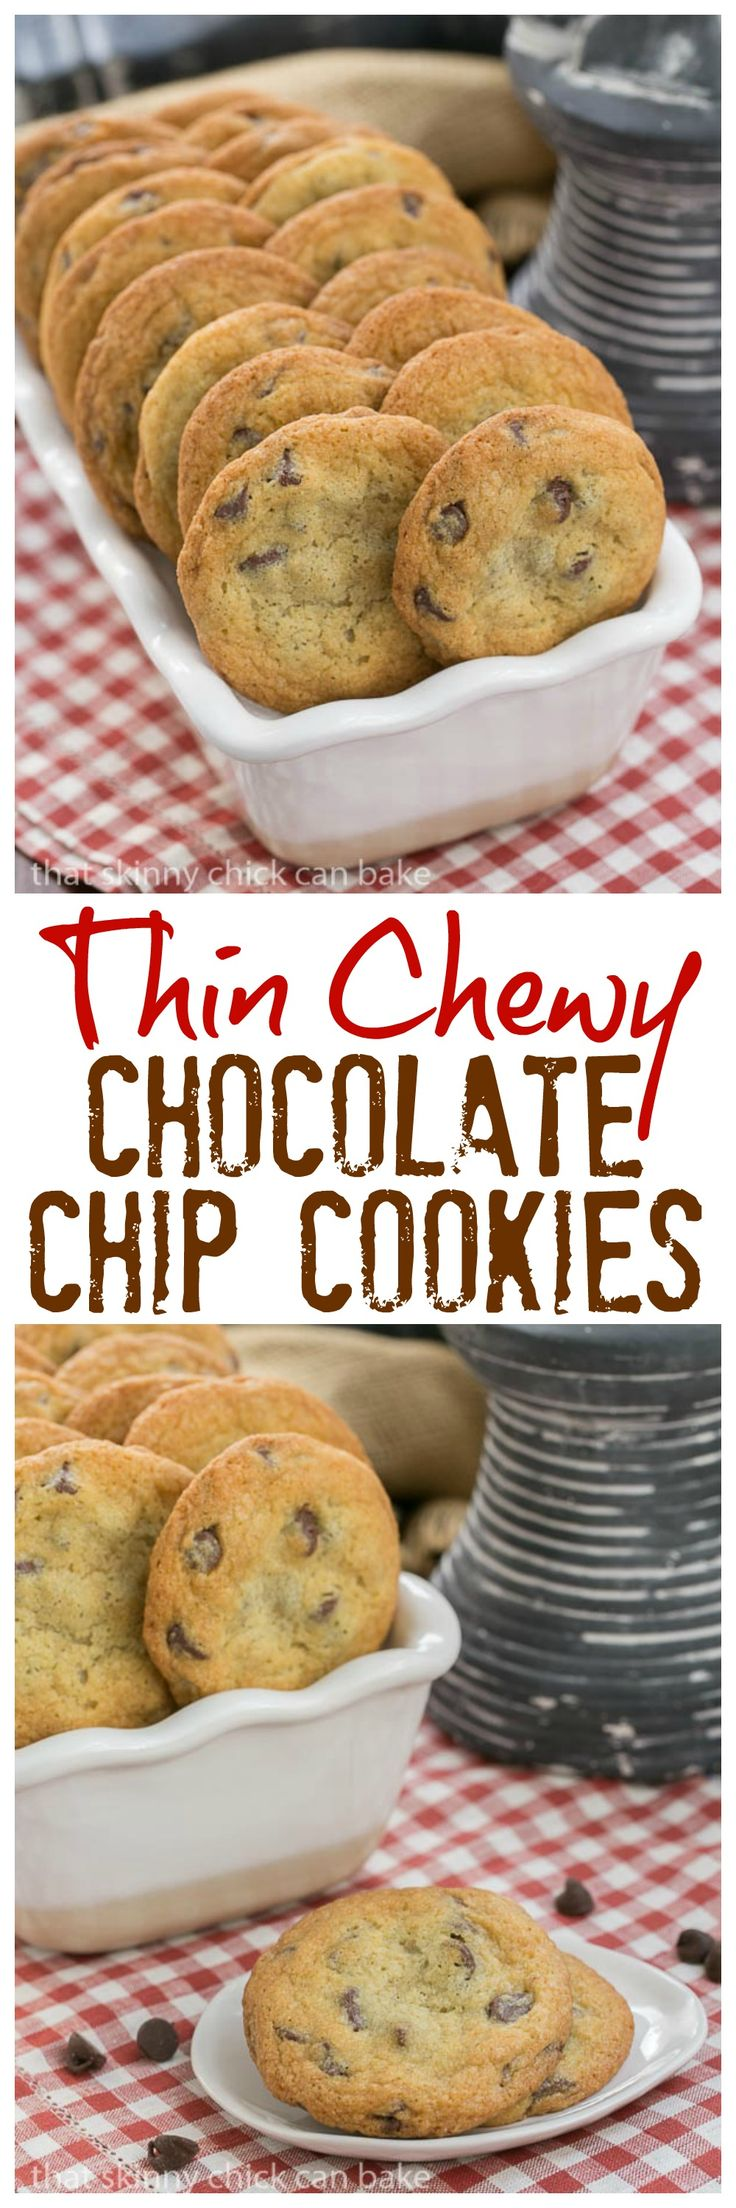 Best 20+ Chewy chocolate chip cookies ideas on Pinterest ...